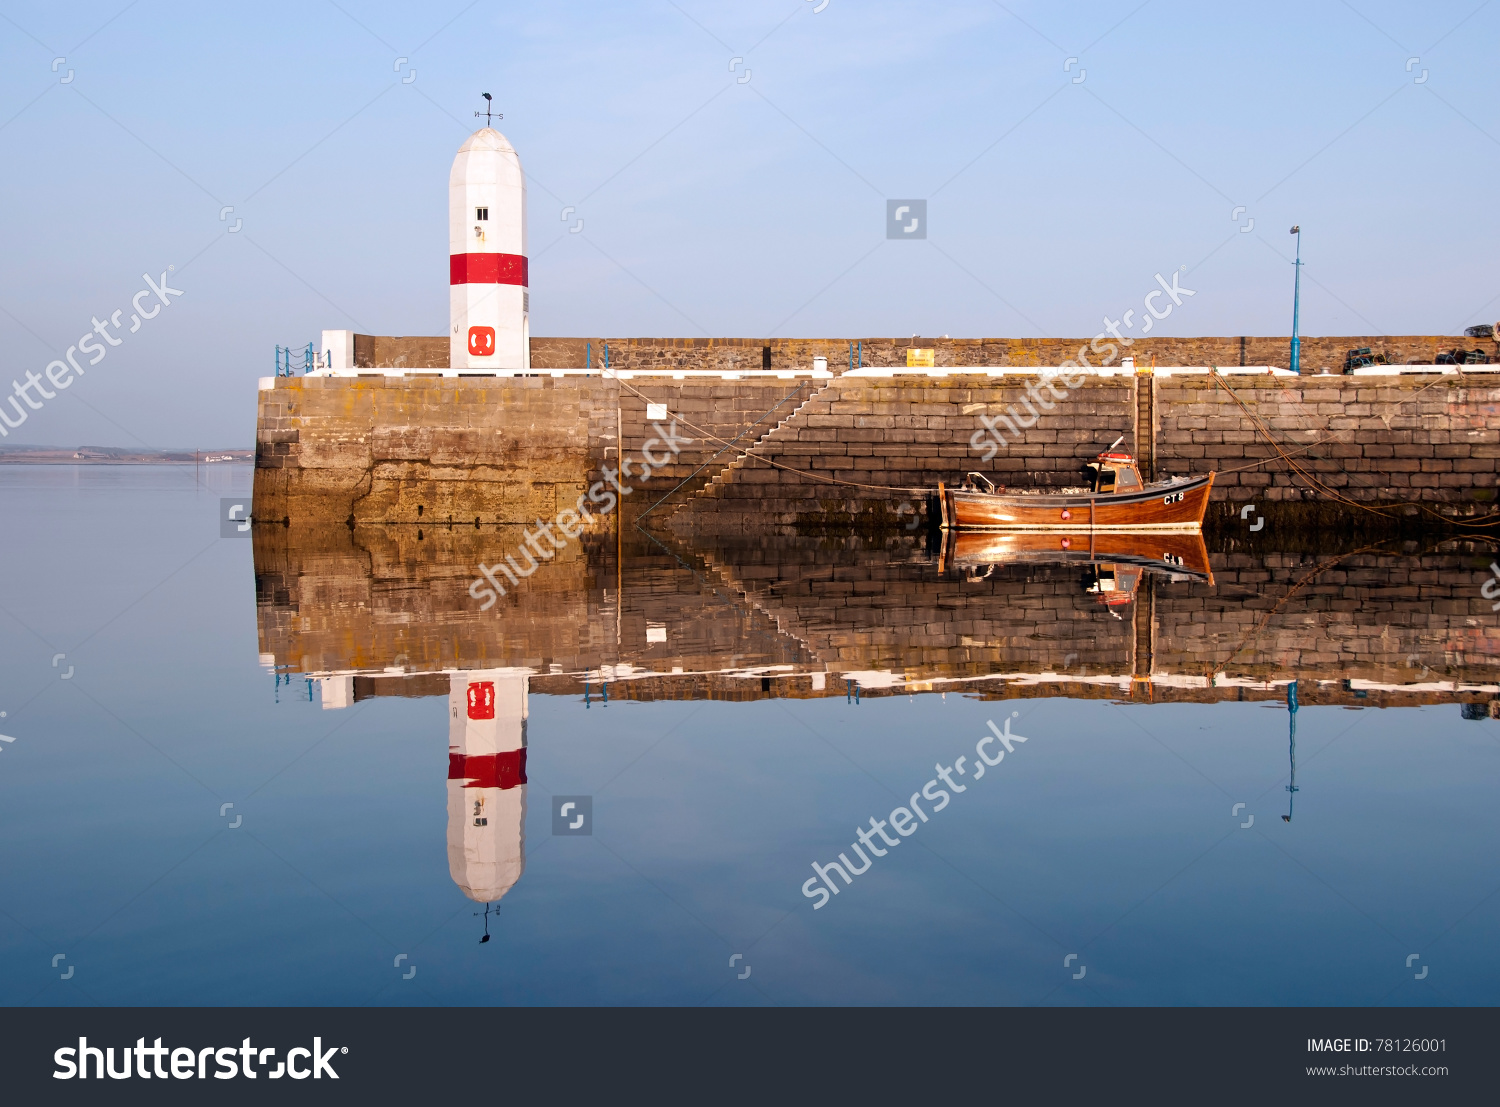 Old Lighthouse On Breakwater Wall In A Harbour With Boat. Sea And.